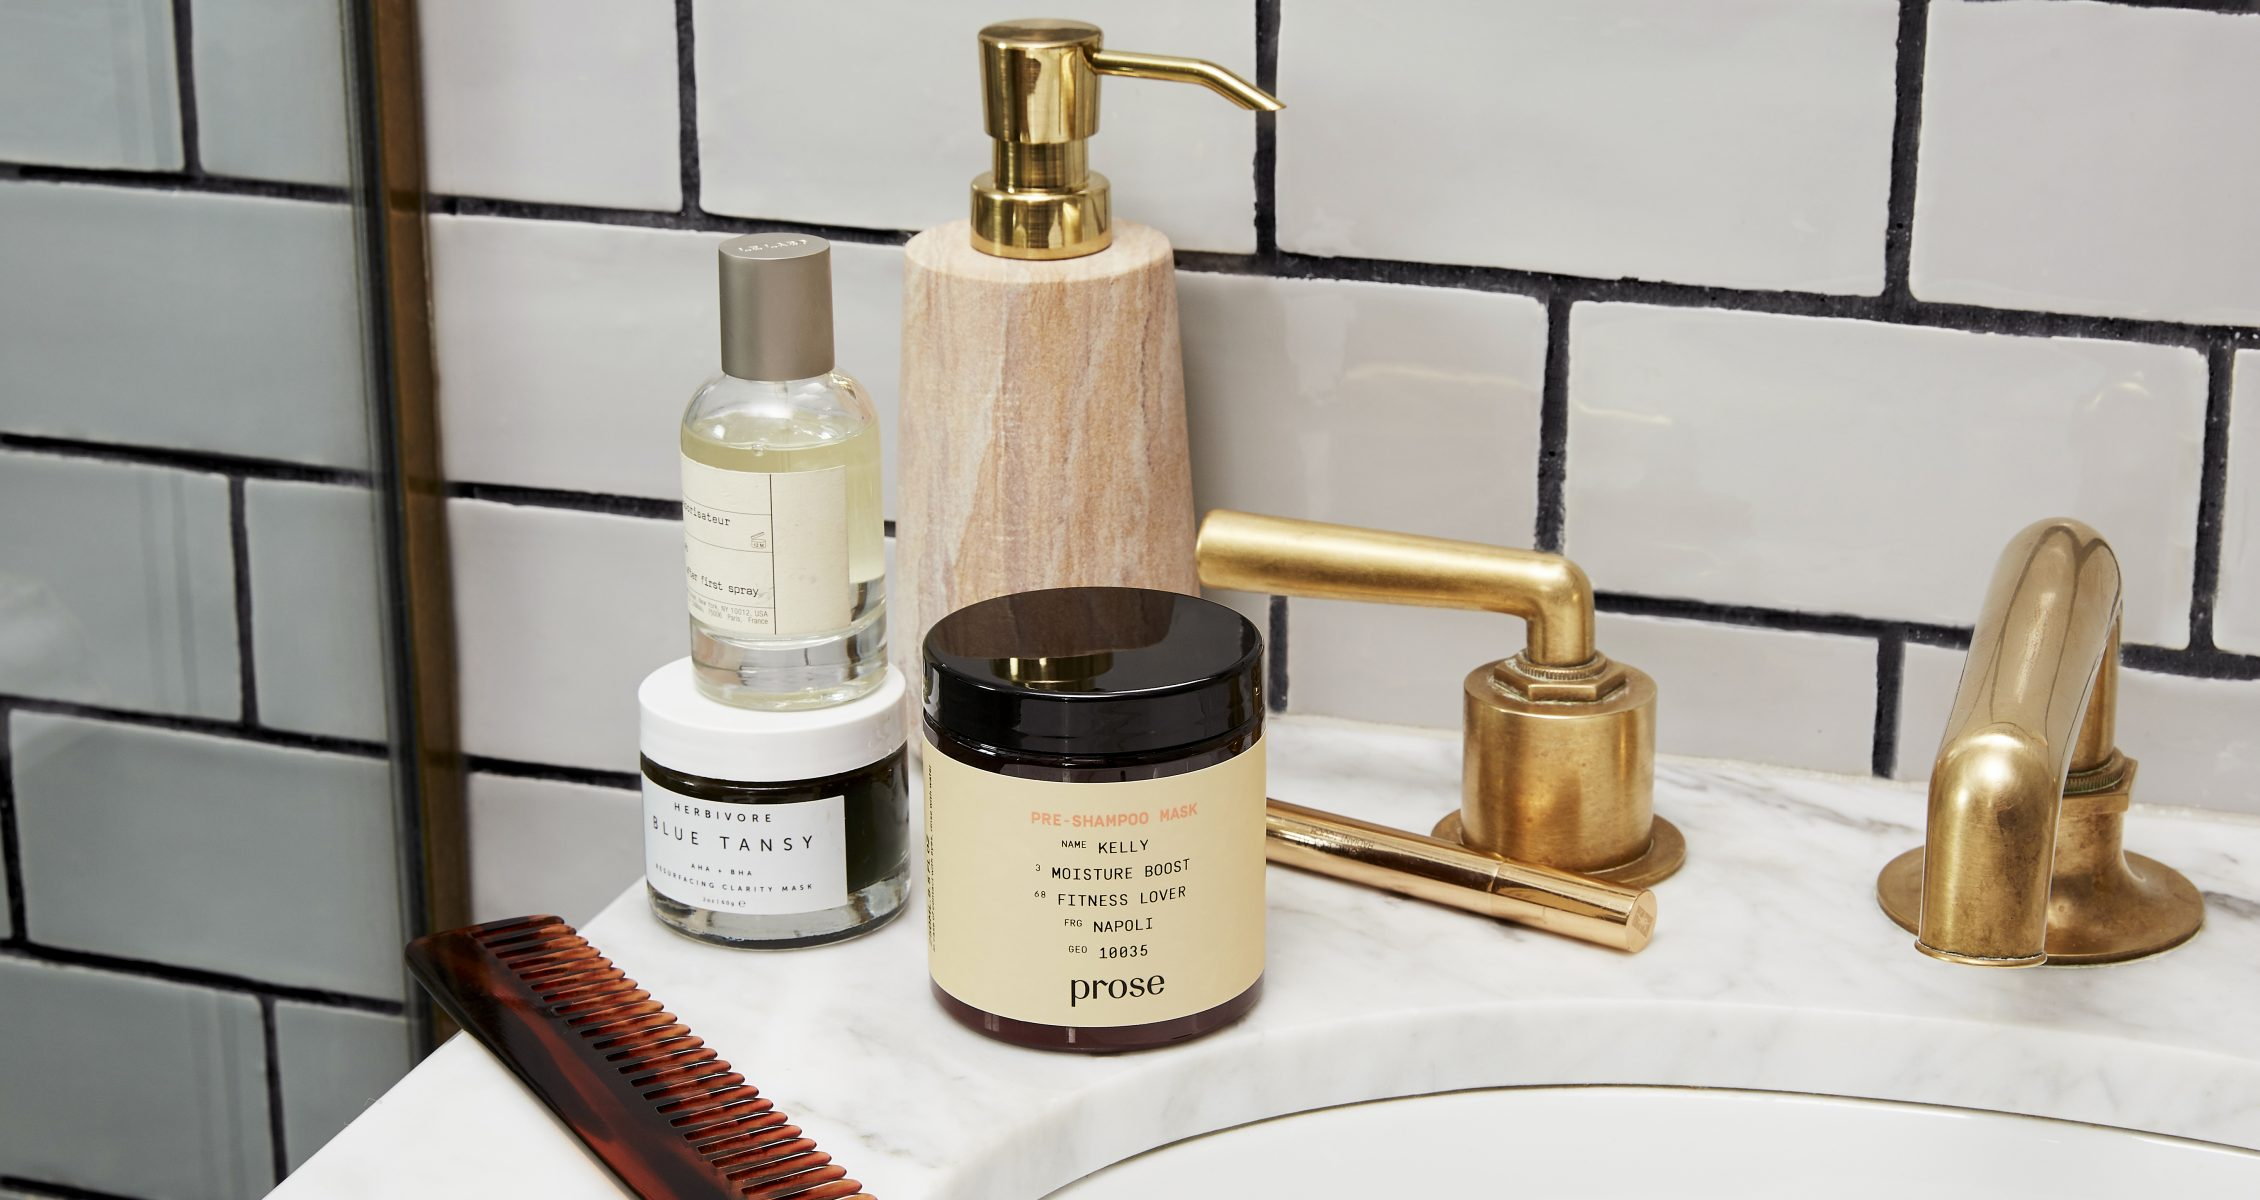 Prose product still on sink with comb and other beauty products